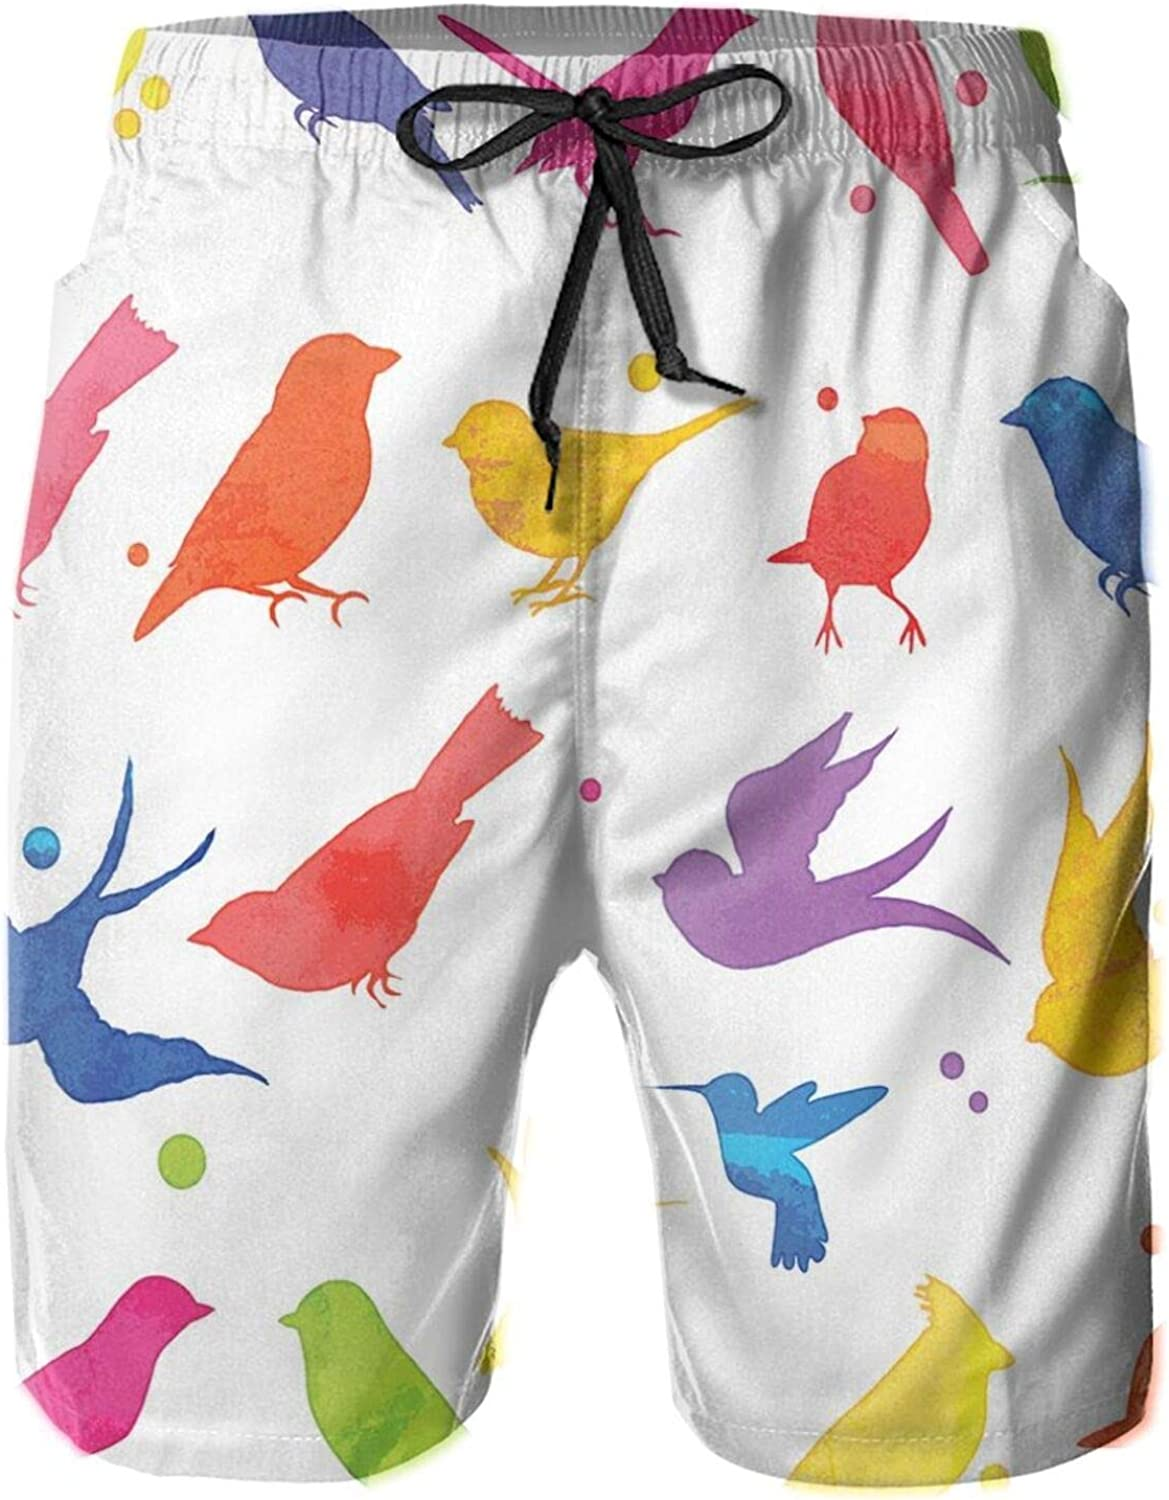 Watercolor Style Rainbow Colored Bird Silhouette Collection Abstract Animal Design Printed Beach Shorts for Men Swim Trucks Mesh Lining,L